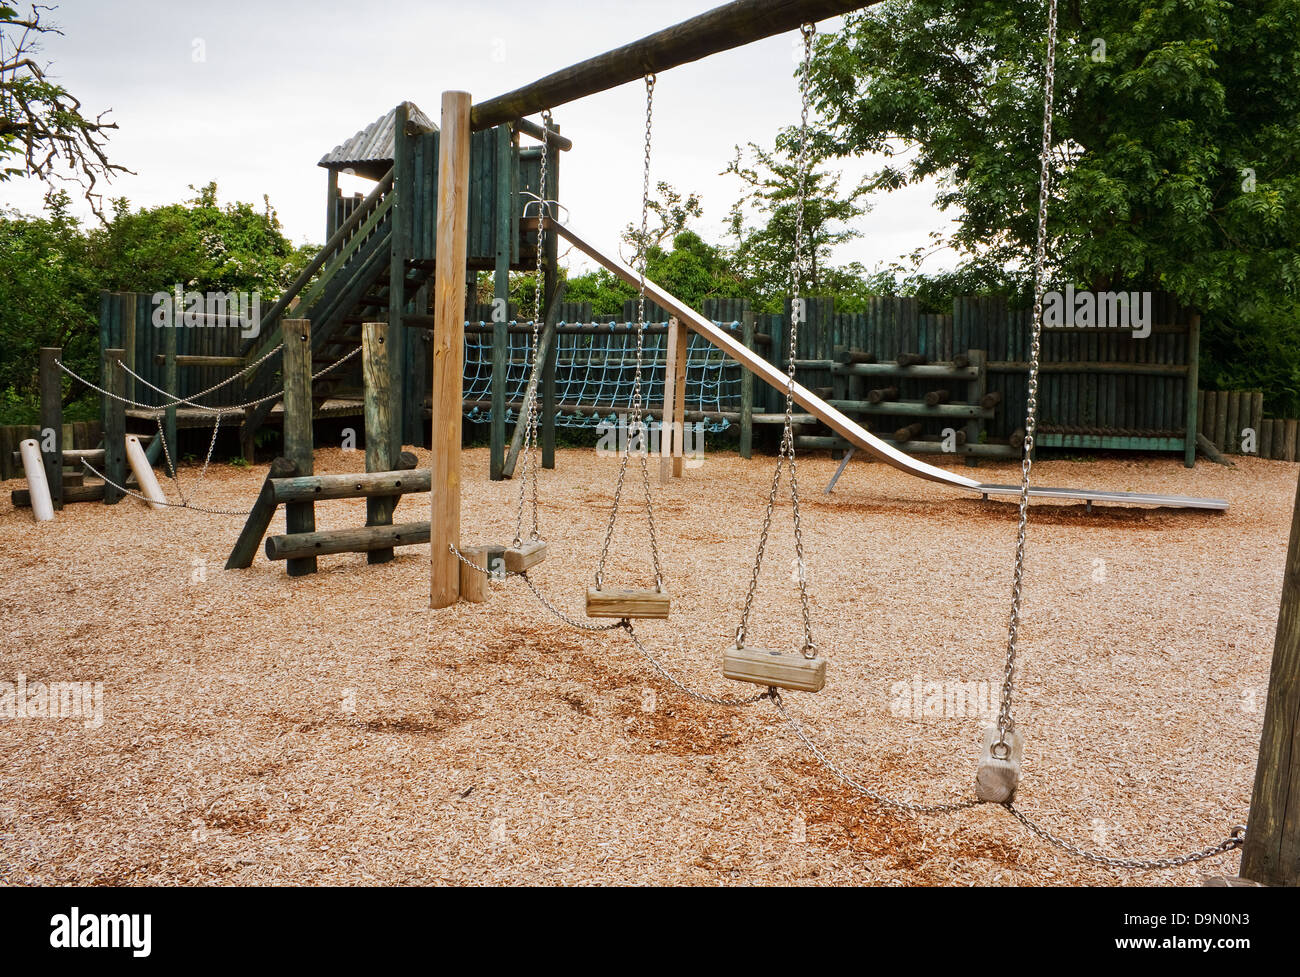 Adventure Playground for young children to enjoy with a slide, rope tunnel and castle turrets - Stock Image